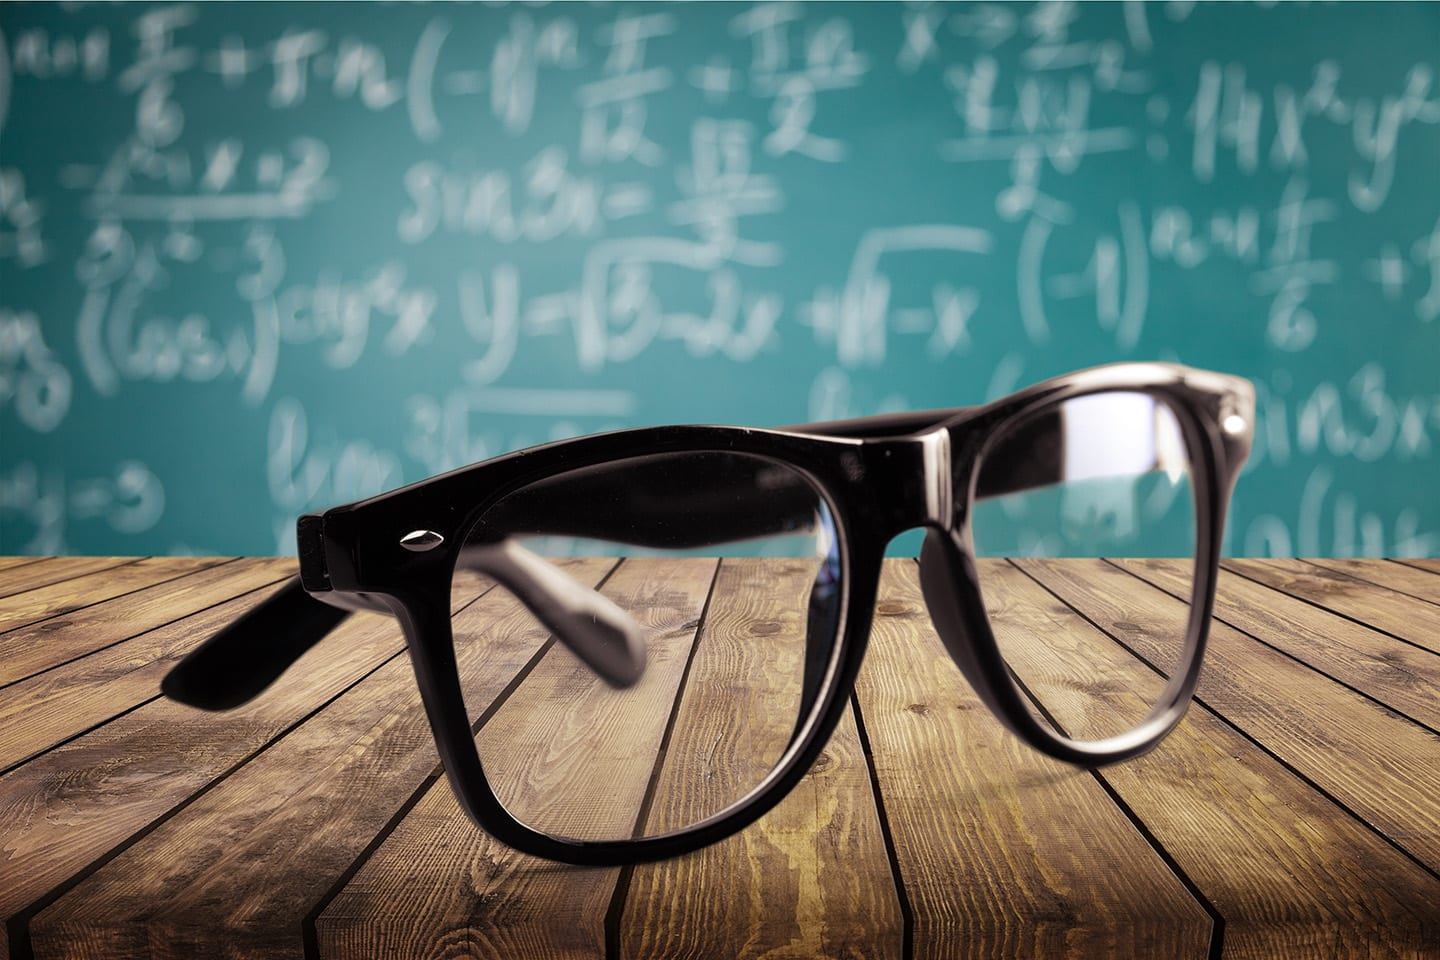 What are the Pros and Cons of Progressive Lenses vs. Bifocals?